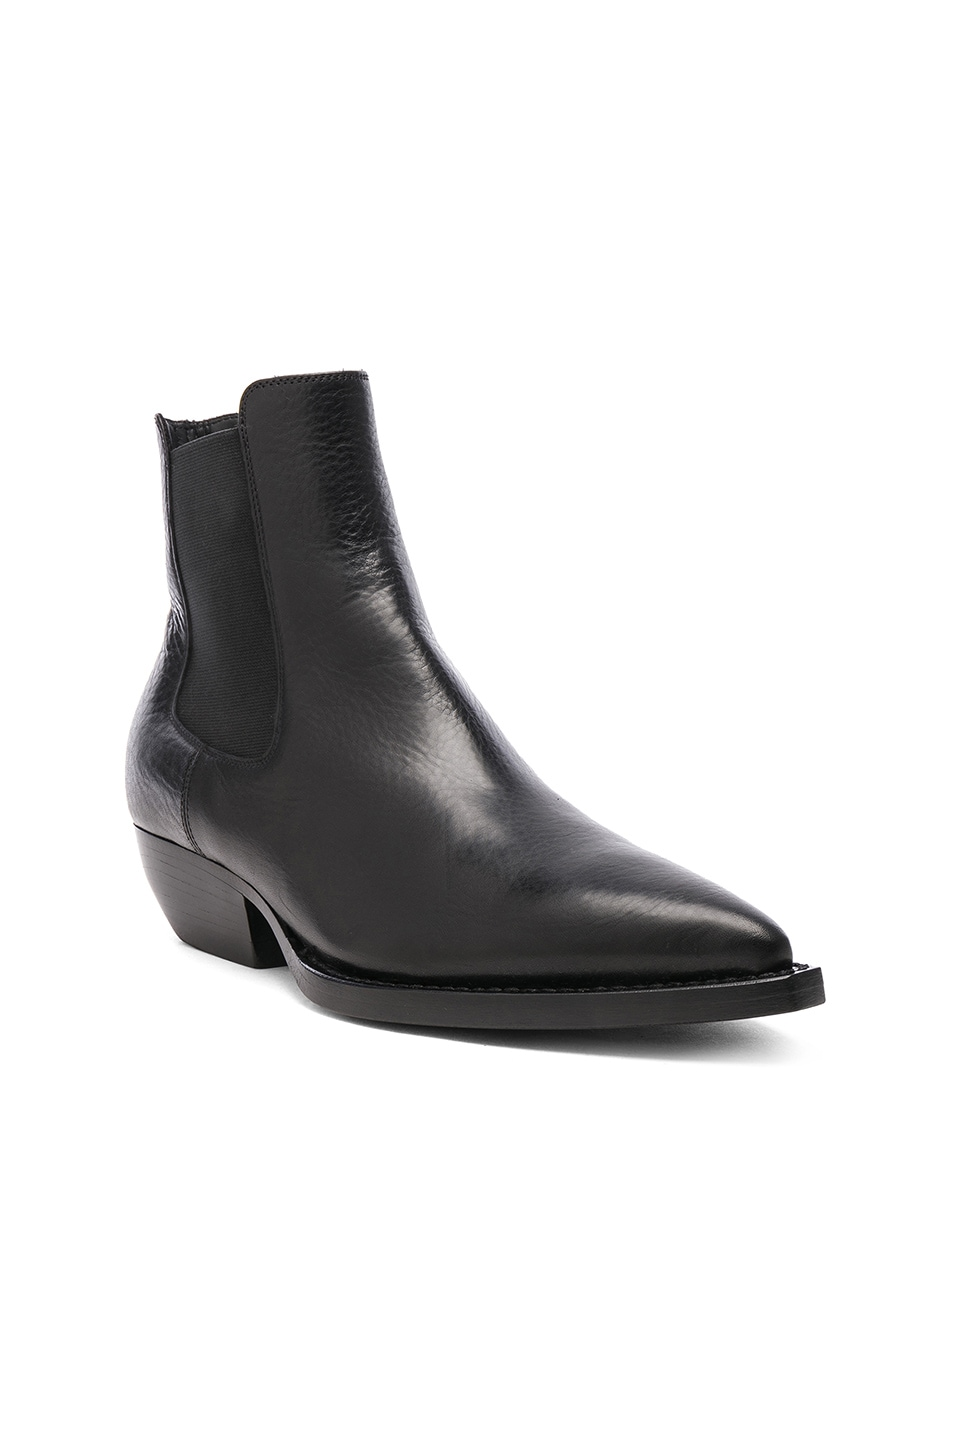 Image 2 of Saint Laurent Theo Leather Chelsea Boots in Black